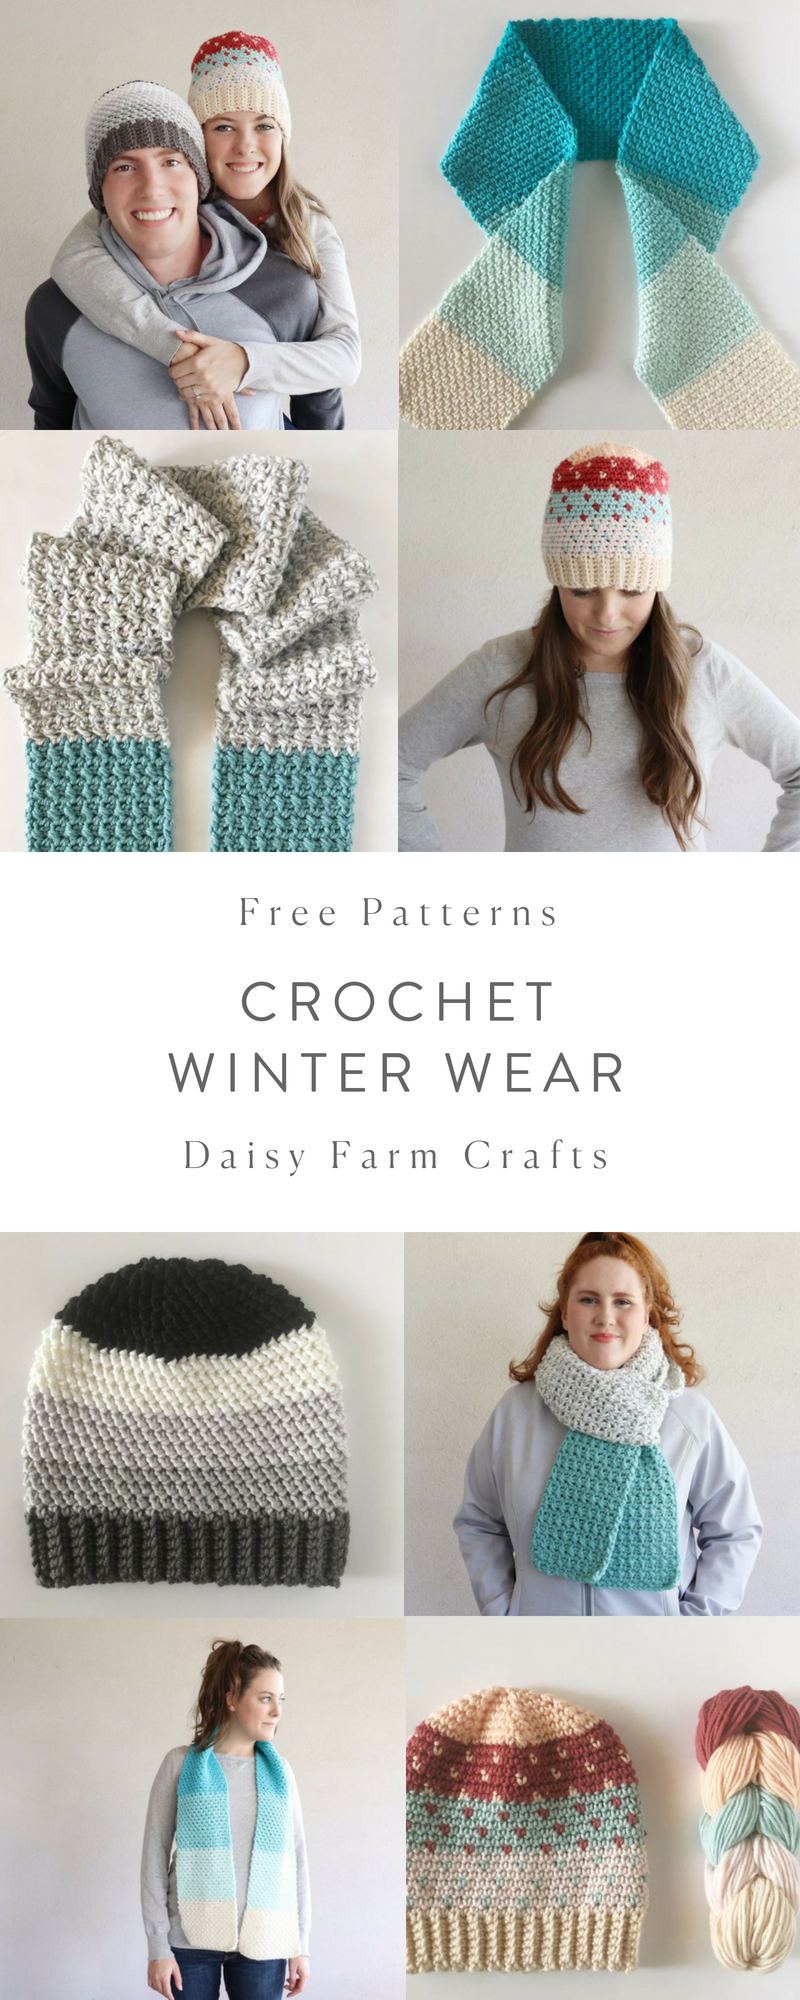 Free Patterns - Crochet Winter Wear - Daisy Farm Crafts | Daisy Farm ...